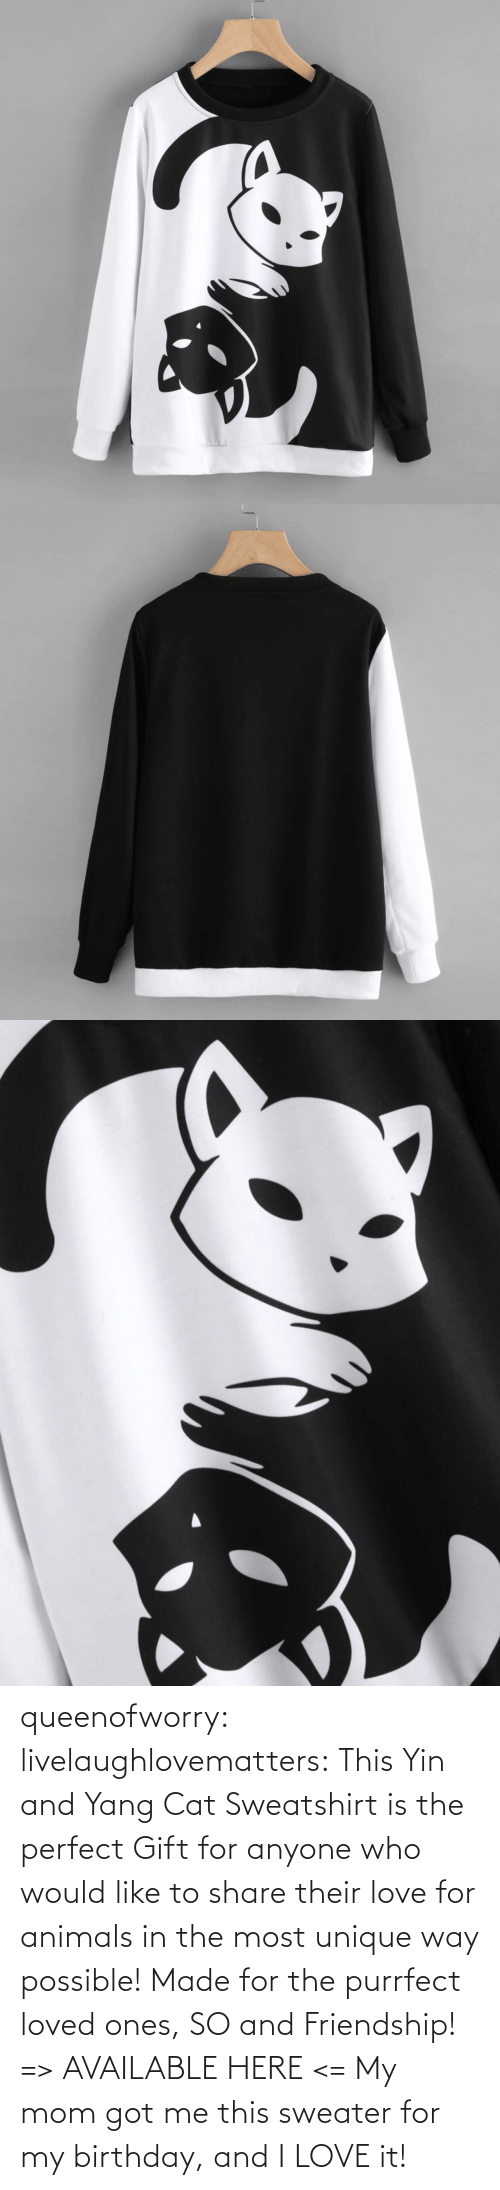 Black: queenofworry: livelaughlovematters:  This Yin and Yang Cat Sweatshirt is the perfect Gift for anyone who would like to share their love for animals in the most unique way possible! Made for the purrfect loved ones, SO and Friendship! => AVAILABLE HERE <=    My mom got me this sweater for my birthday, and I LOVE it!